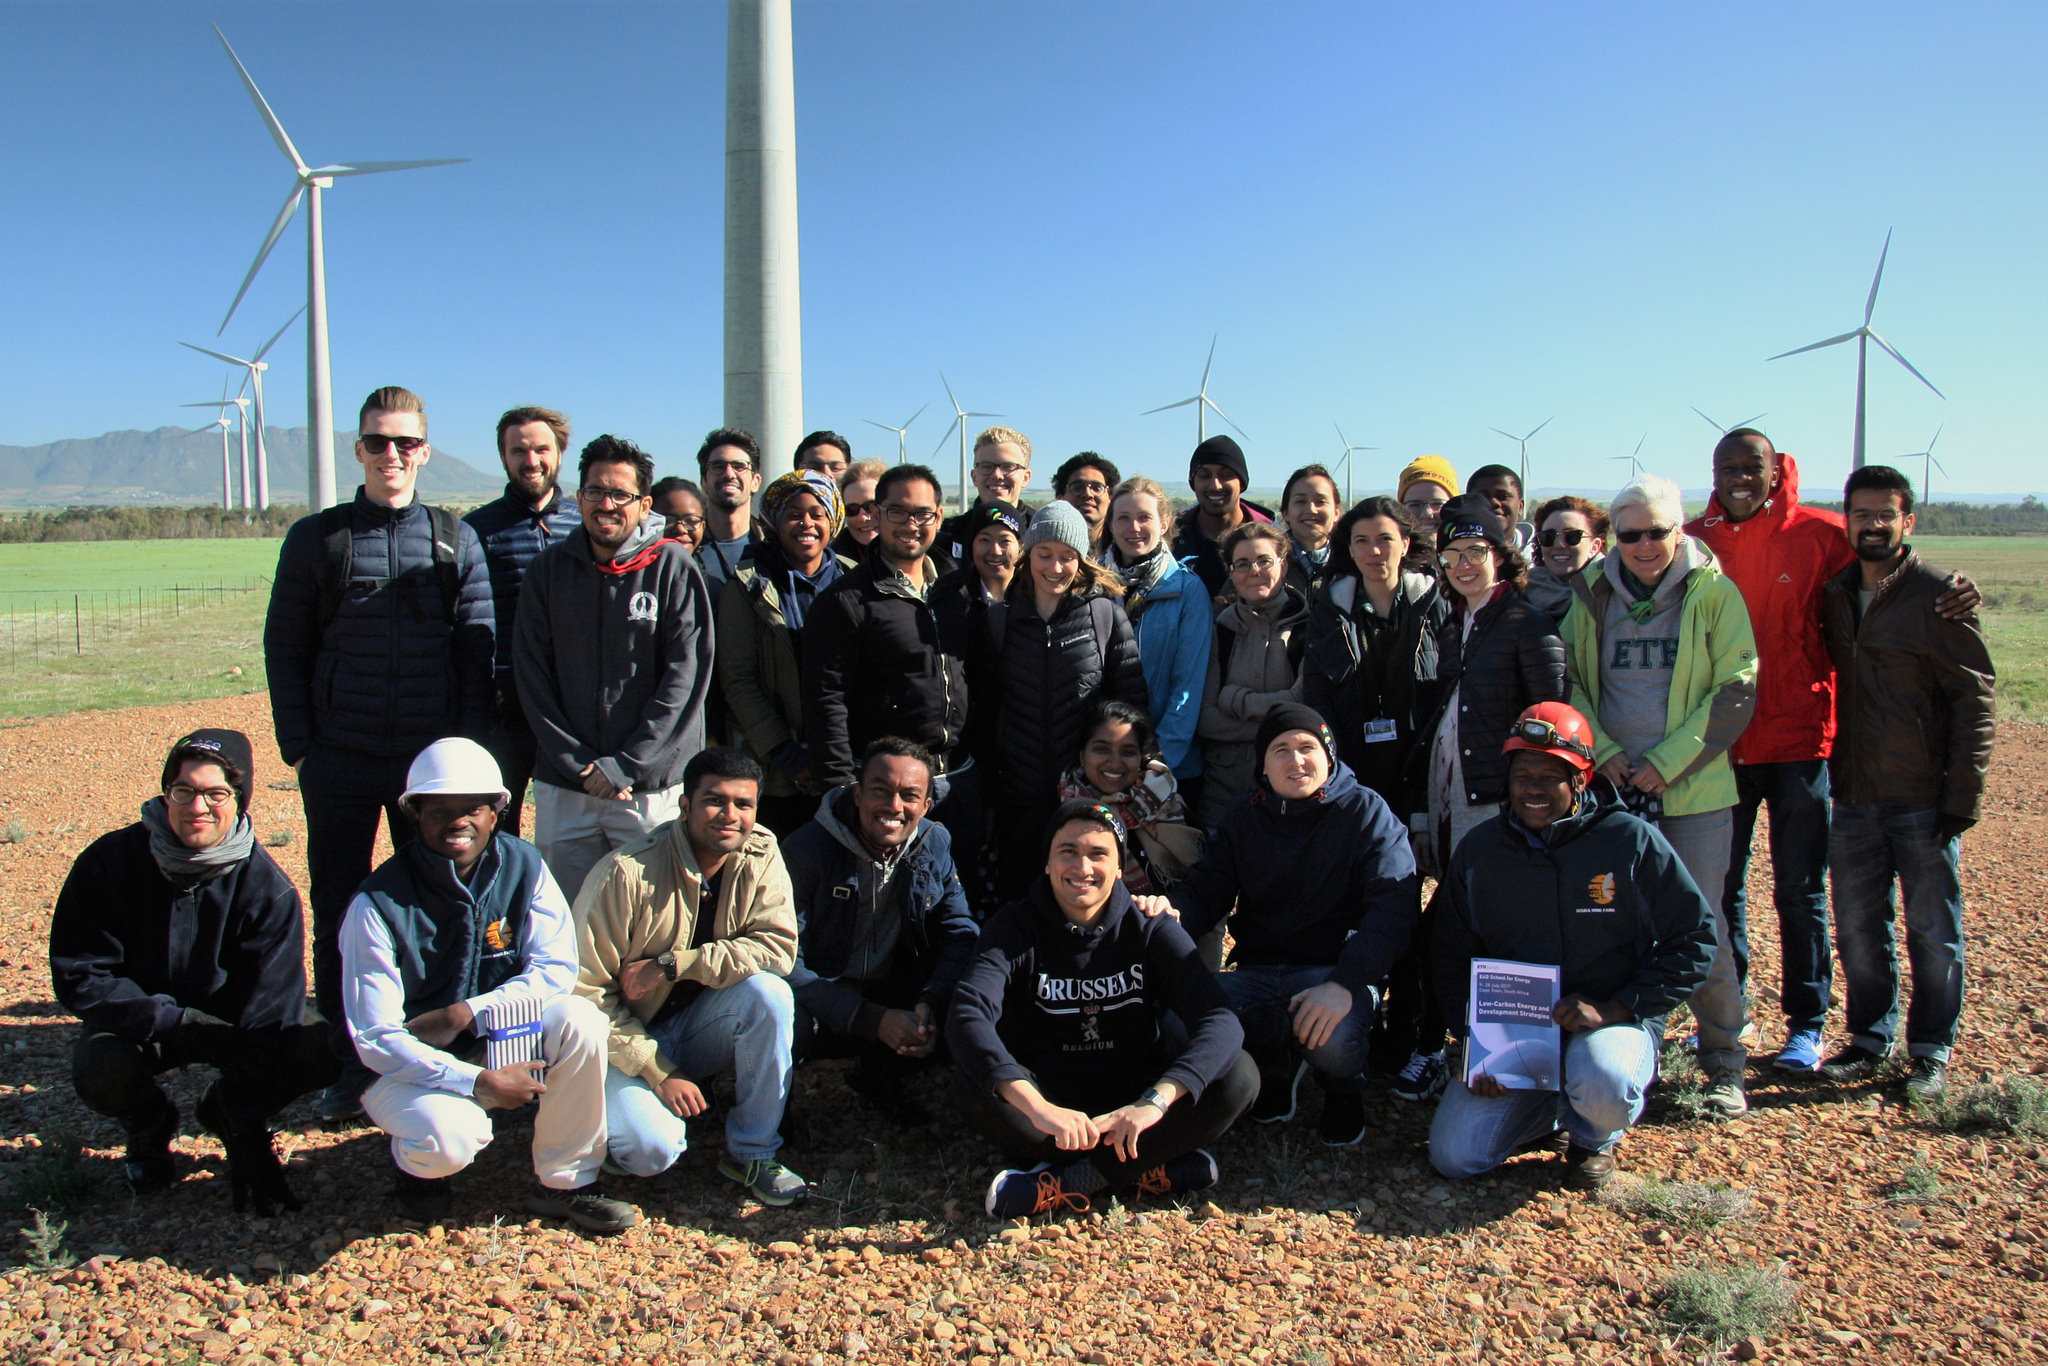 Group picture at the Gouda Wind Farm, one of the largest wind-farms in Southern Africa with 138 MW nameplate capacity. Photo credit: Energy Politics Group and ETH Global.